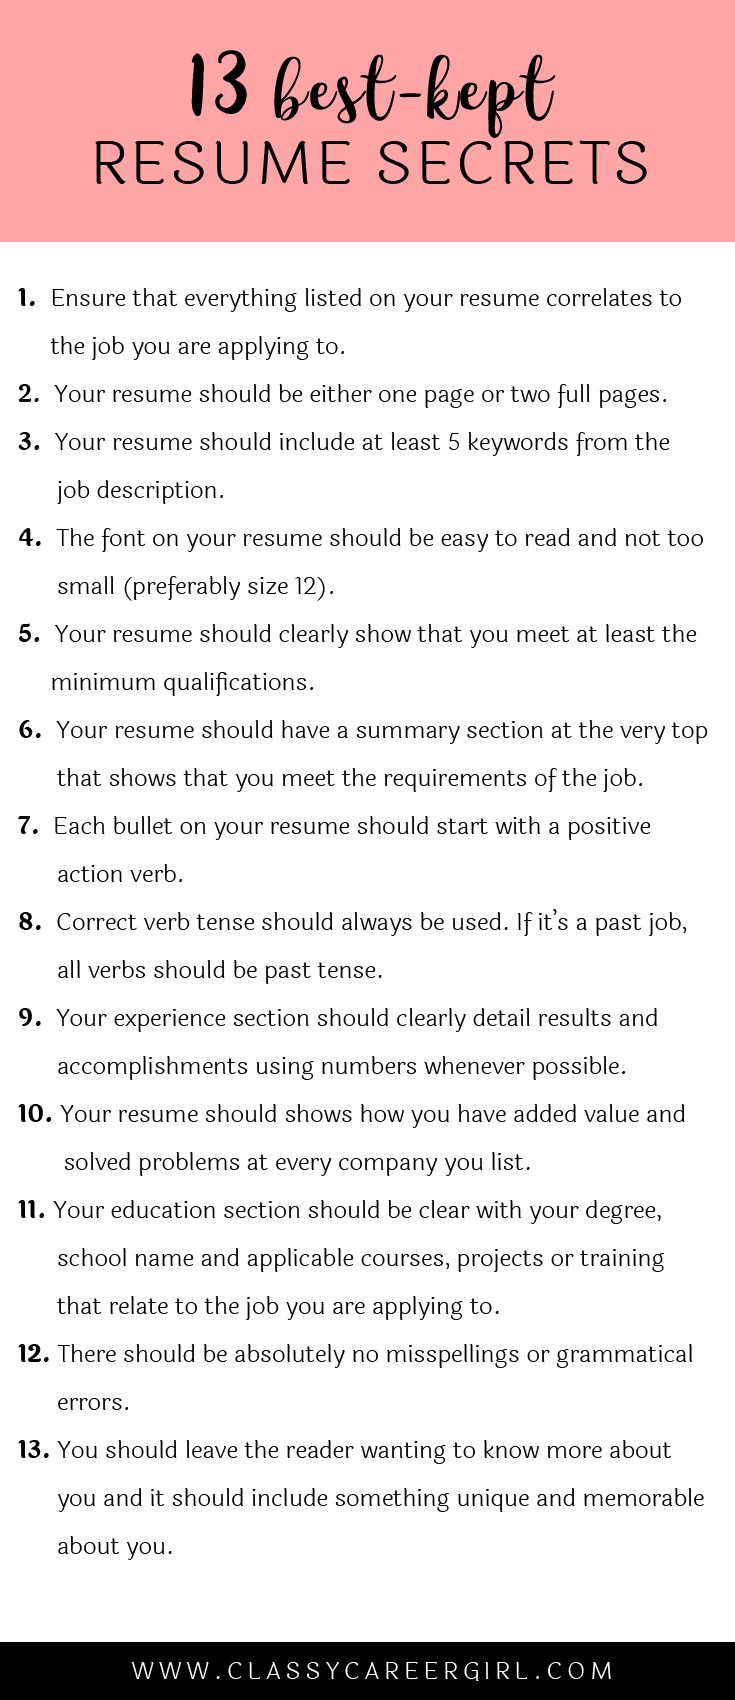 Opposenewapstandardsus  Remarkable  Ideas About Resume On Pinterest  Cv Format Resume Cv And  With Fetching Some Hiring Managers Will Toss Your Resume Out If You Dont Know These  With Astounding Resume Search Free Also How To List Skills On Resume In Addition Examples Of Objectives For Resume And Examples Of Customer Service Resumes As Well As Resume Verb Additionally Objective In Resume Example From Pinterestcom With Opposenewapstandardsus  Fetching  Ideas About Resume On Pinterest  Cv Format Resume Cv And  With Astounding Some Hiring Managers Will Toss Your Resume Out If You Dont Know These  And Remarkable Resume Search Free Also How To List Skills On Resume In Addition Examples Of Objectives For Resume From Pinterestcom